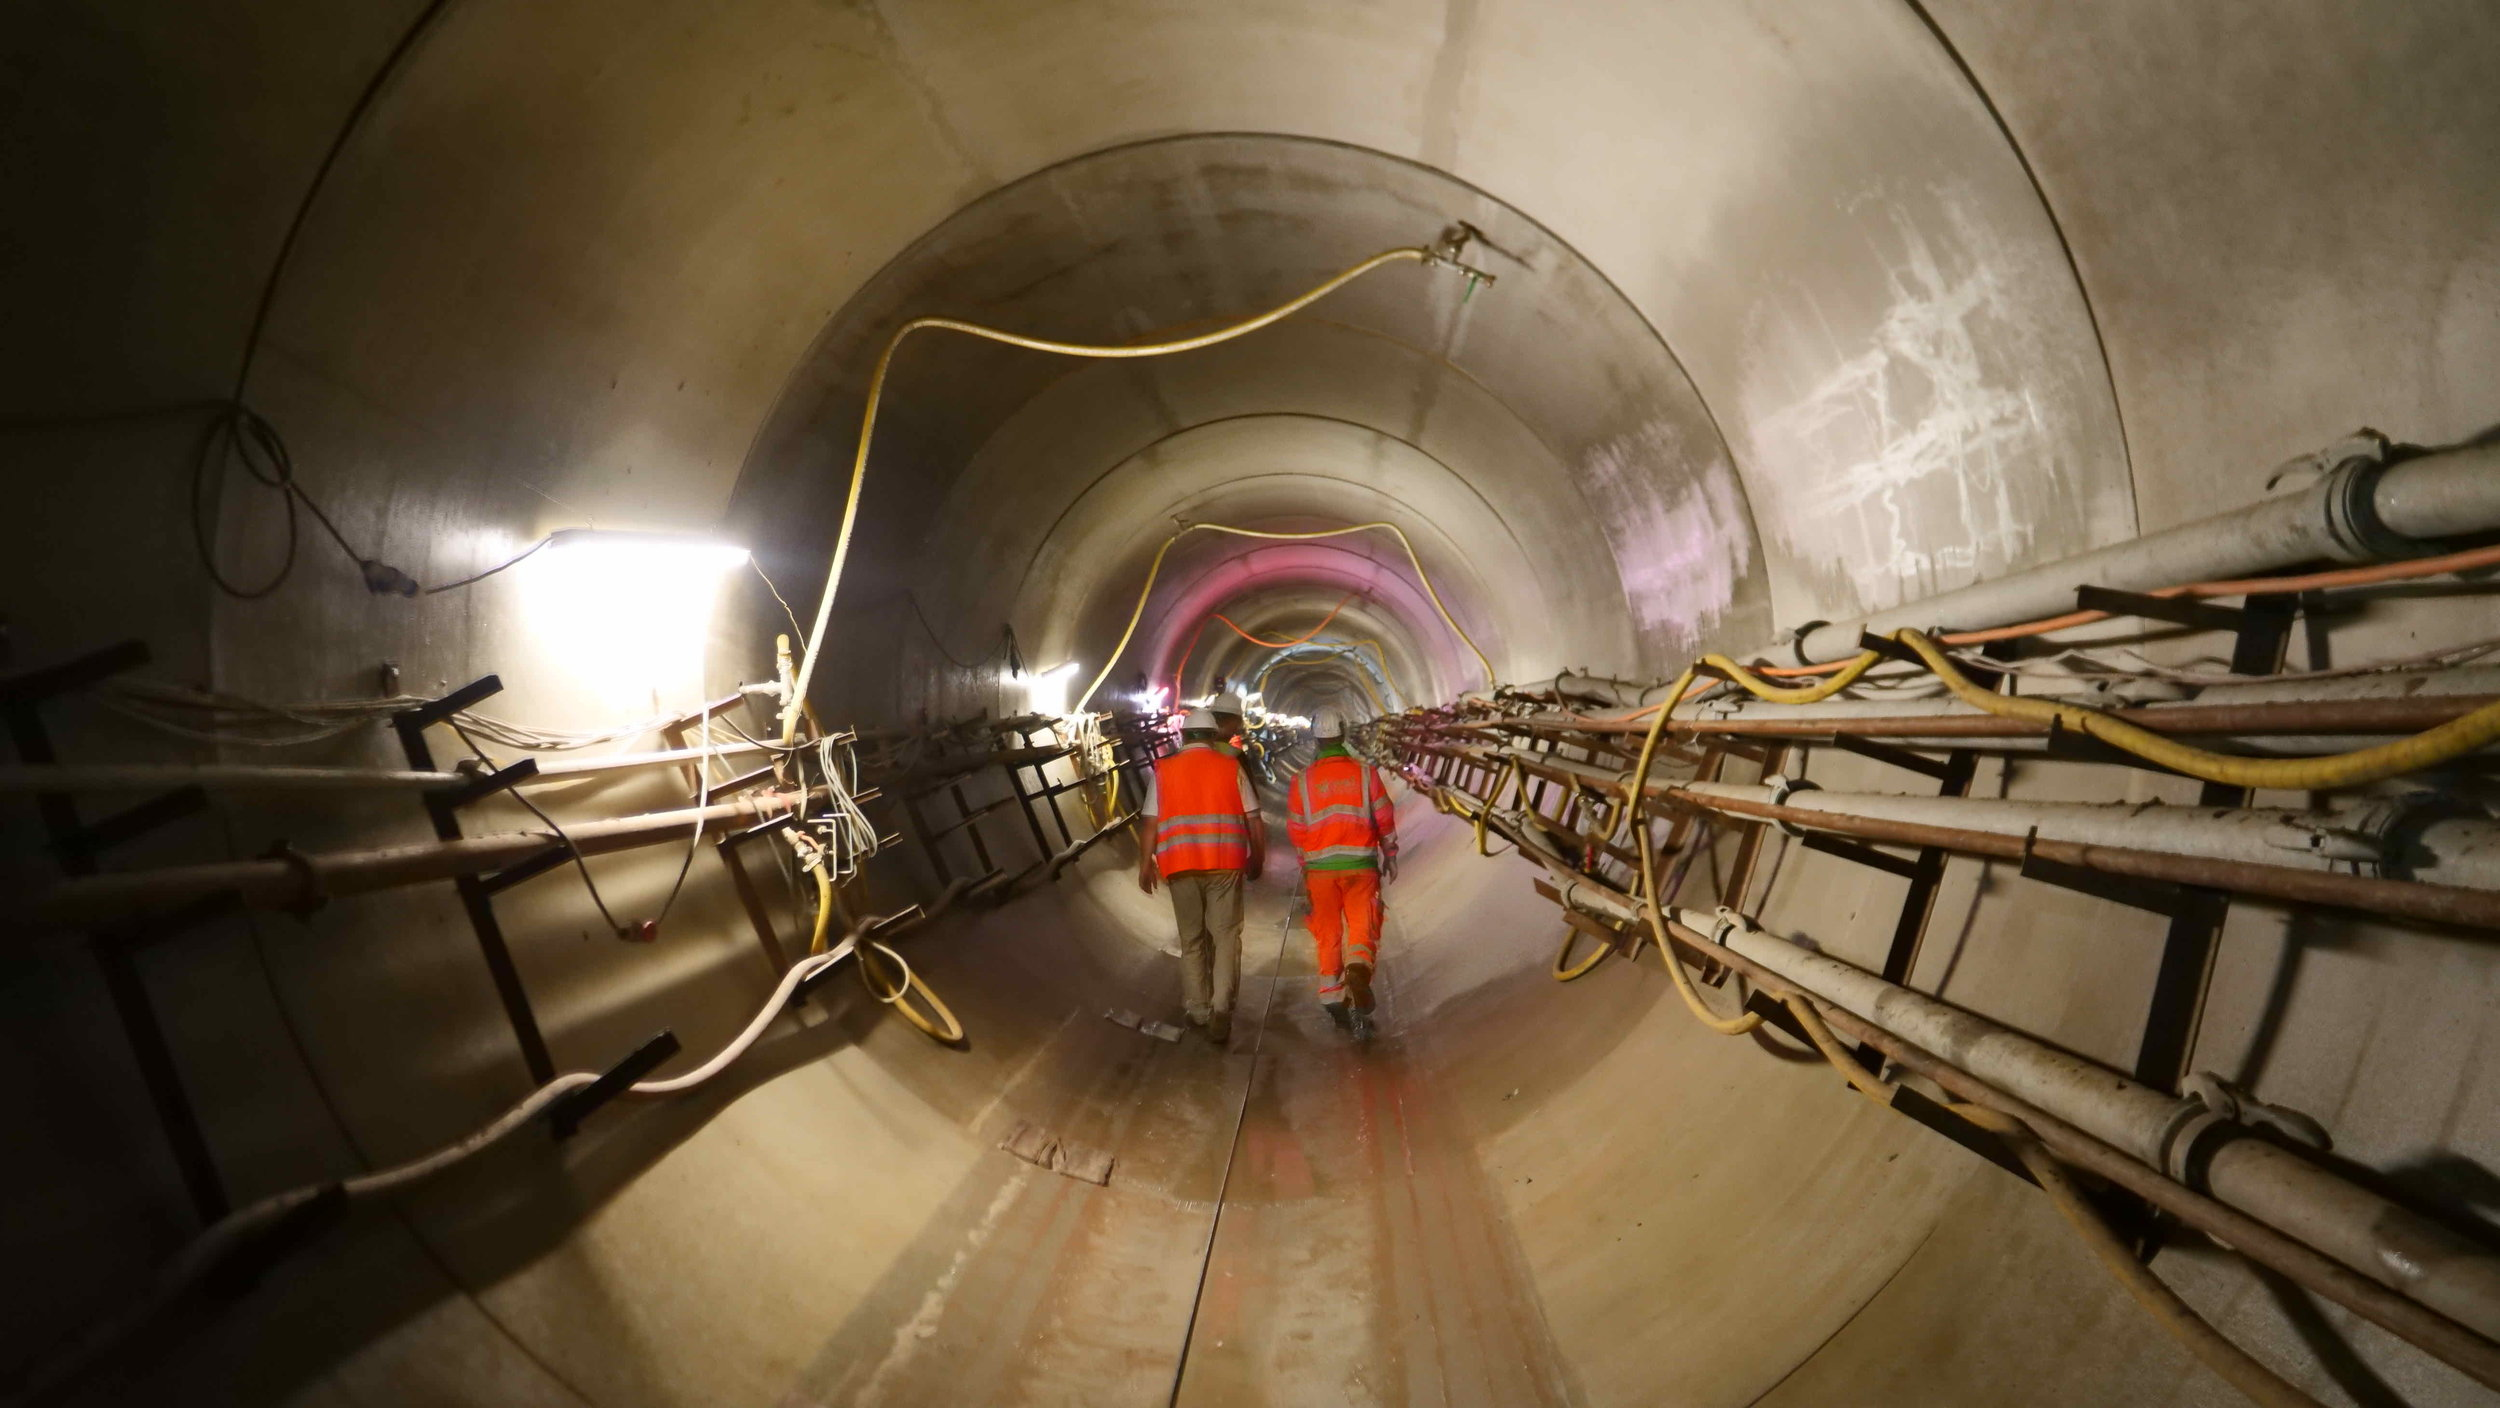 The InterContinental Railway team inspect the Mauerpark tunnel in Berlin-Prenzlauer Berg. The Berlin Water Works is building the 3.7m diameter tunnel to collect excess water runoff and prevent it from entering the Spree River.